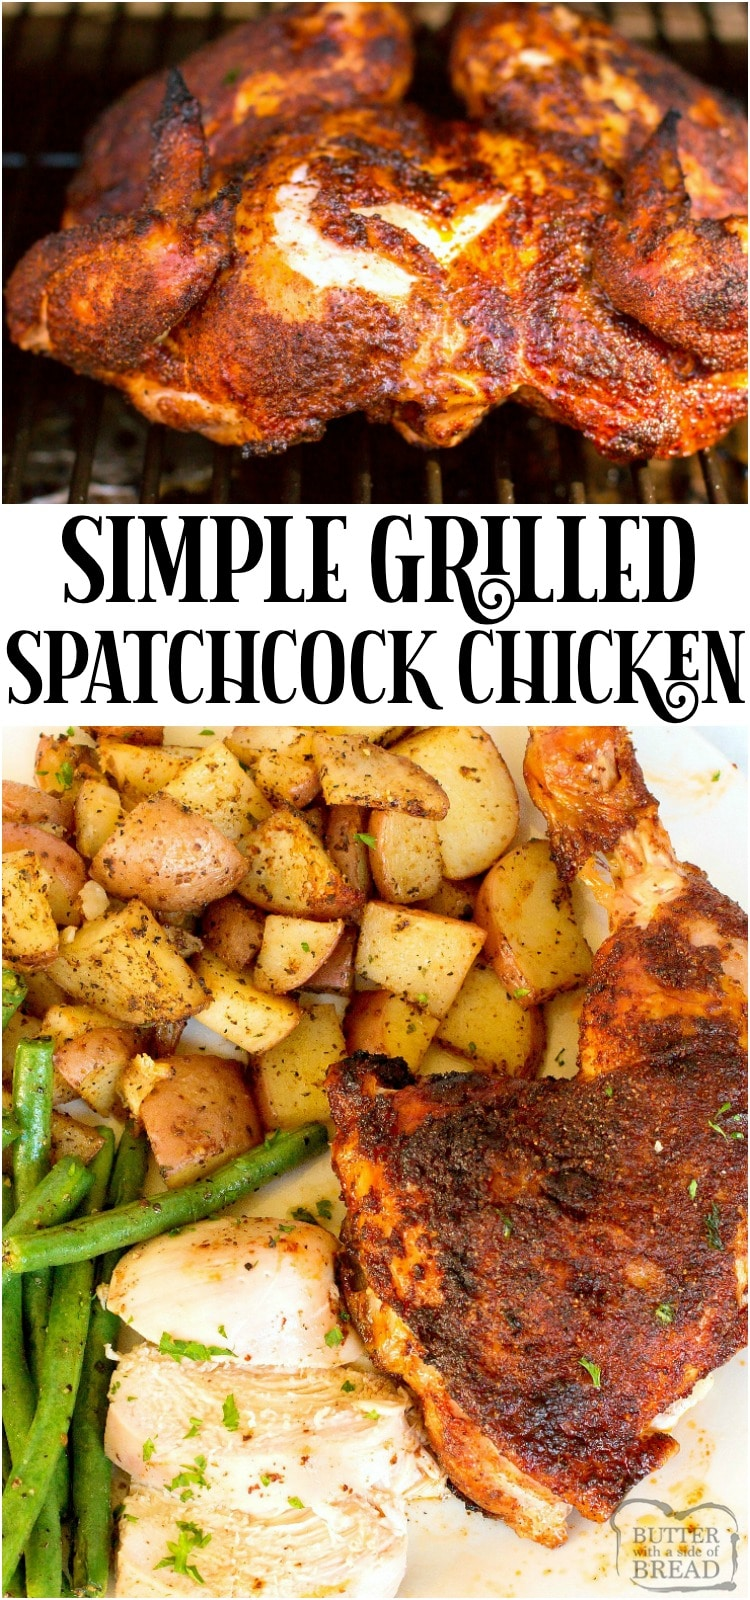 Grilled Spatchcock Chicken Recipe for tender, flavorful chicken that cooks evenly! Shows how to spatchcock a chicken & why it delivers moist chicken with incredible flavor.